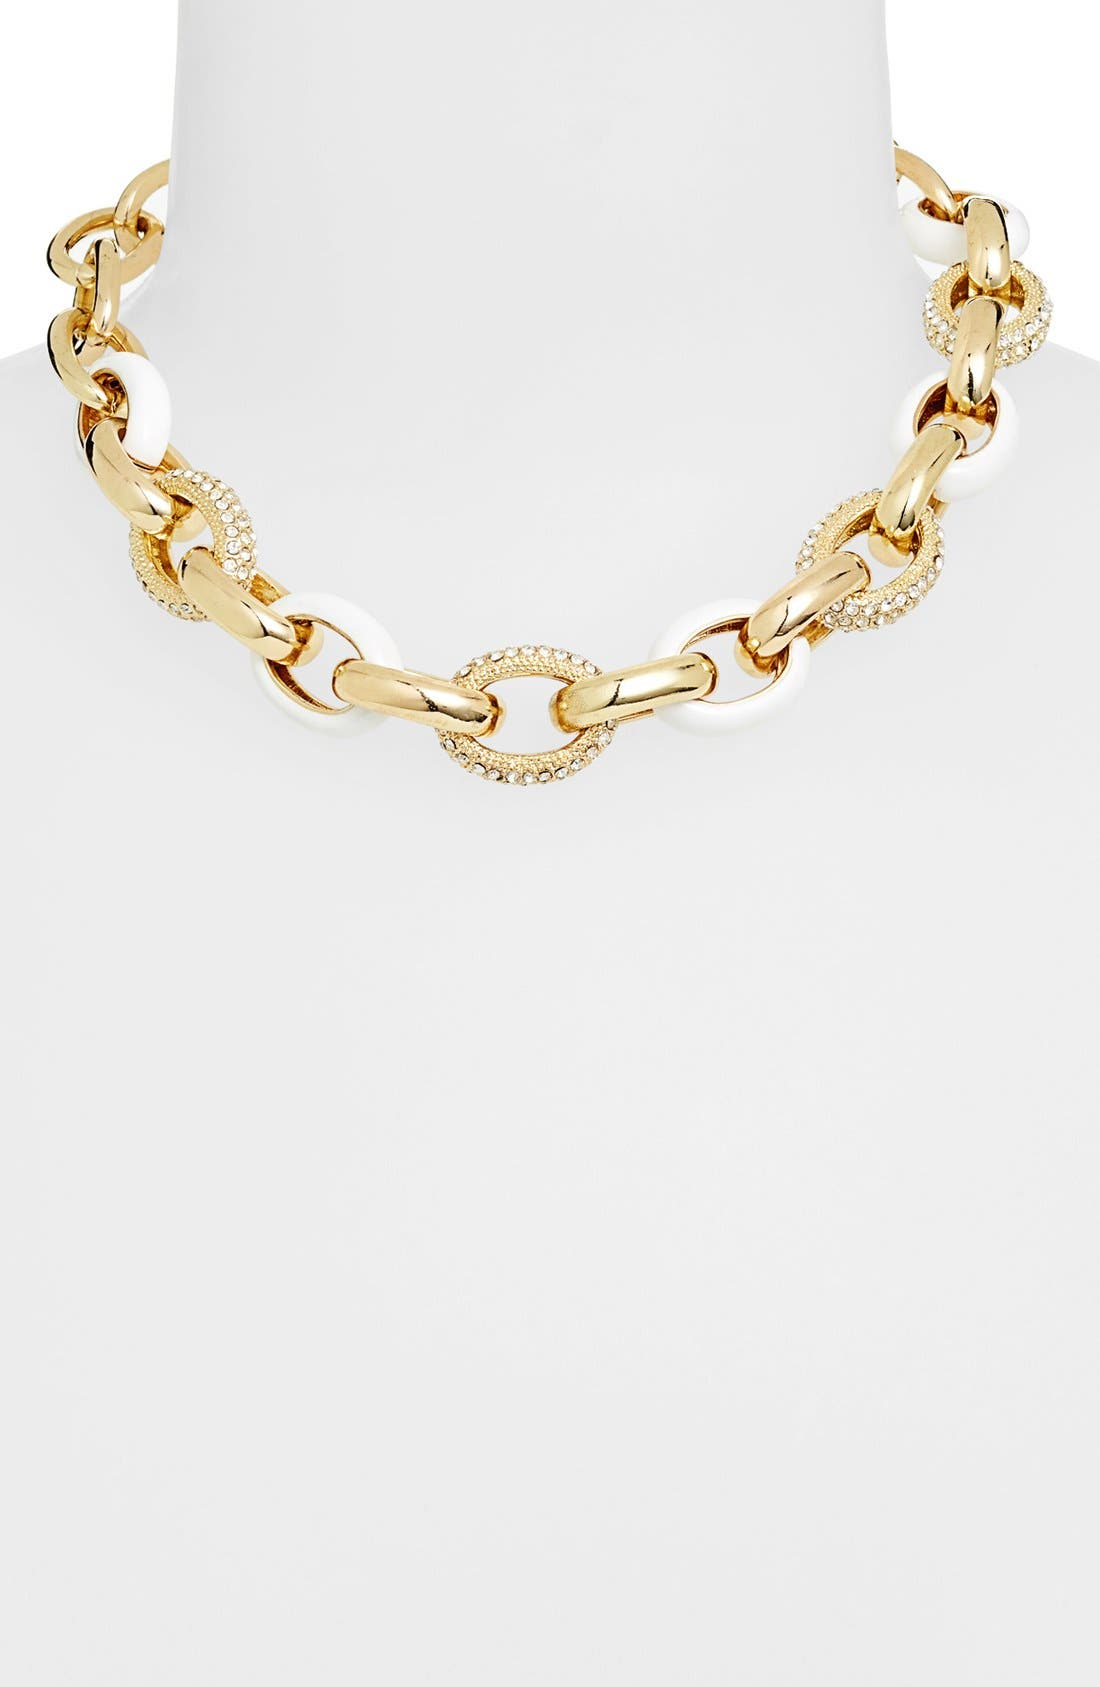 Main Image - Nordstrom 'Yacht Club' Chain Link Collar Necklace